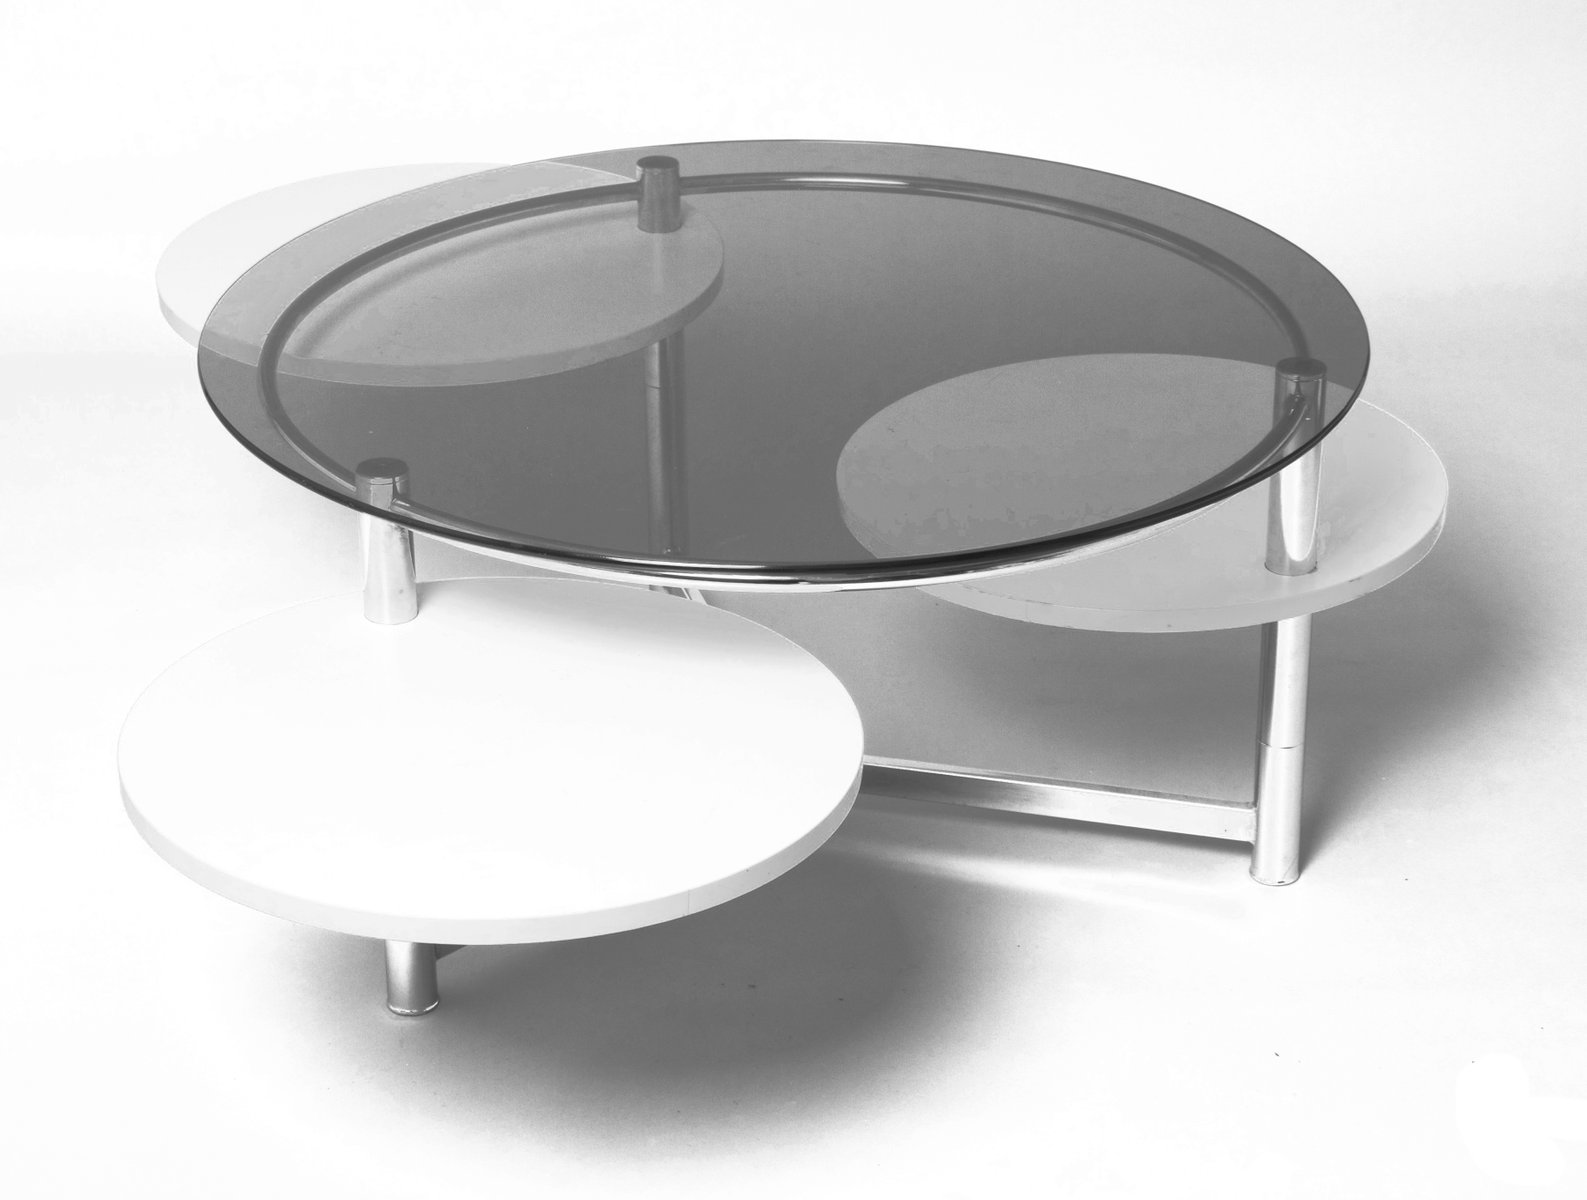 French circular smoked glass coffee table with 3 removable trays french circular smoked glass coffee table with 3 removable trays 1970s geotapseo Image collections